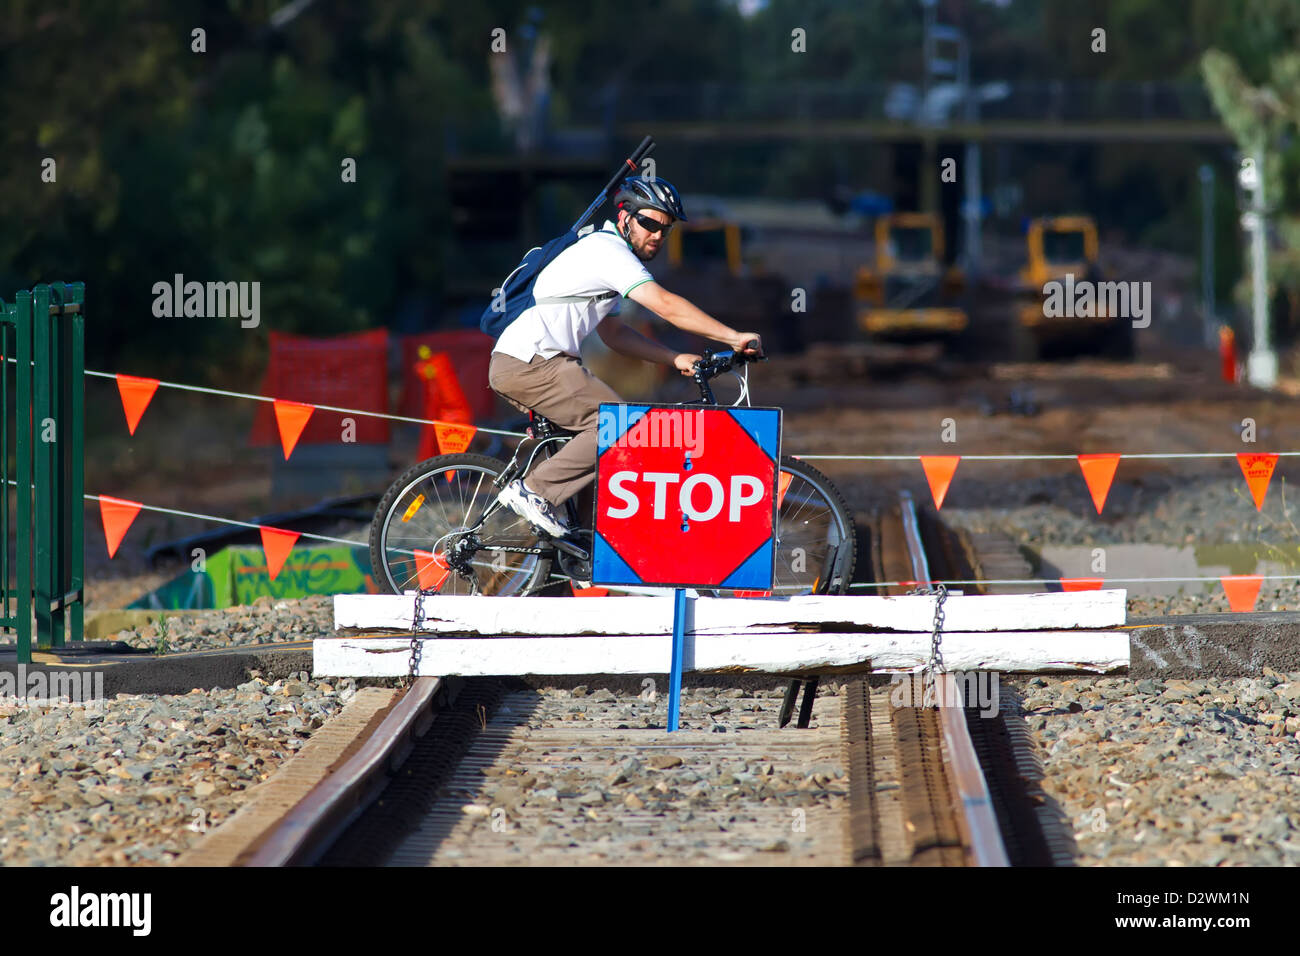 train railway construction stop sign South Australian Adelaide transport transportation - Stock Image